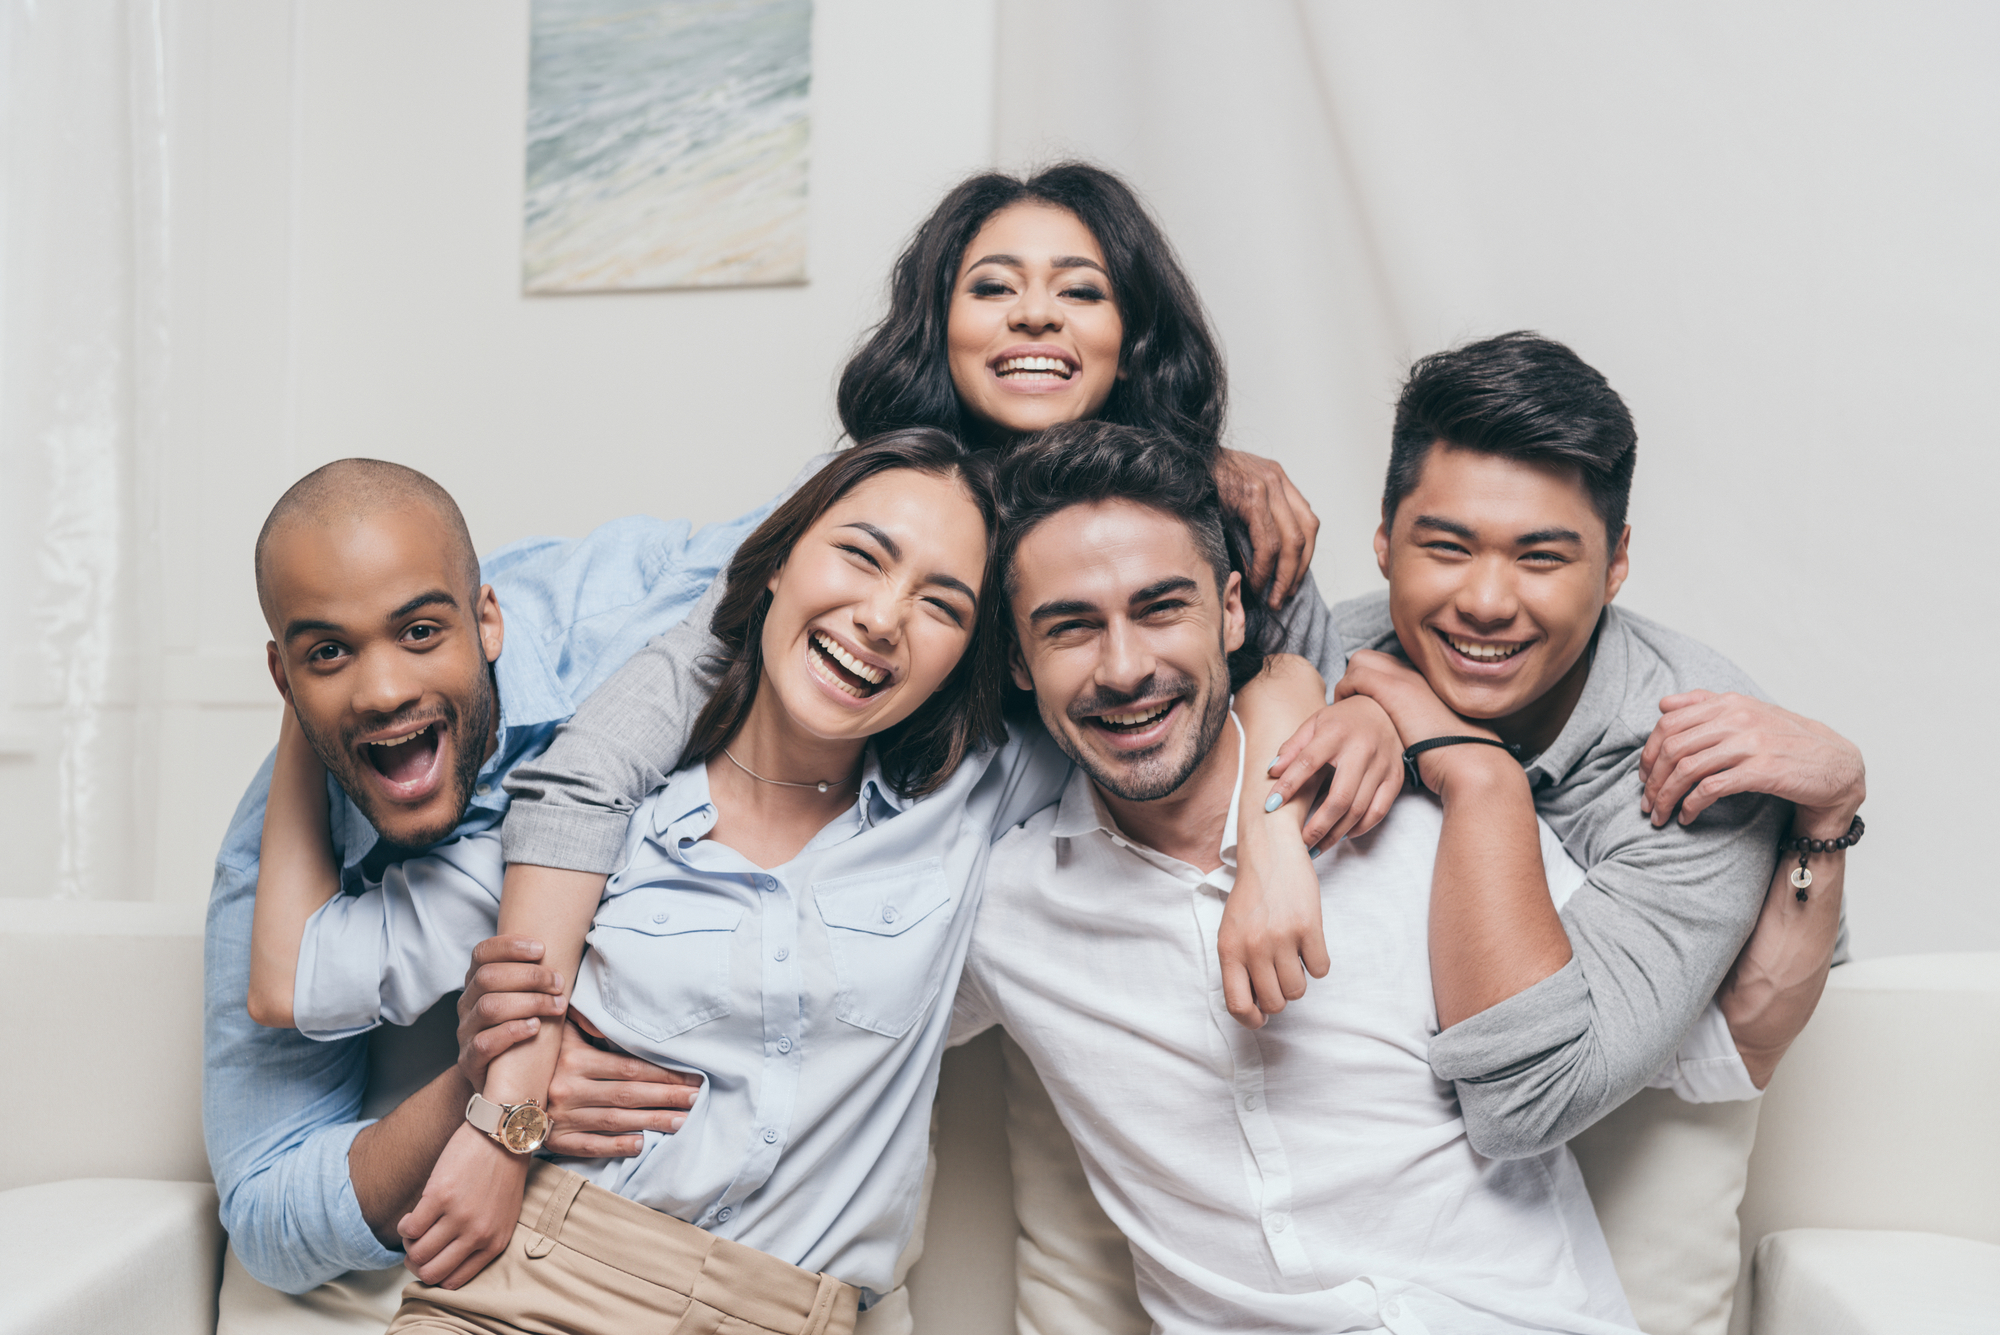 Young cheerful multiethnic friends